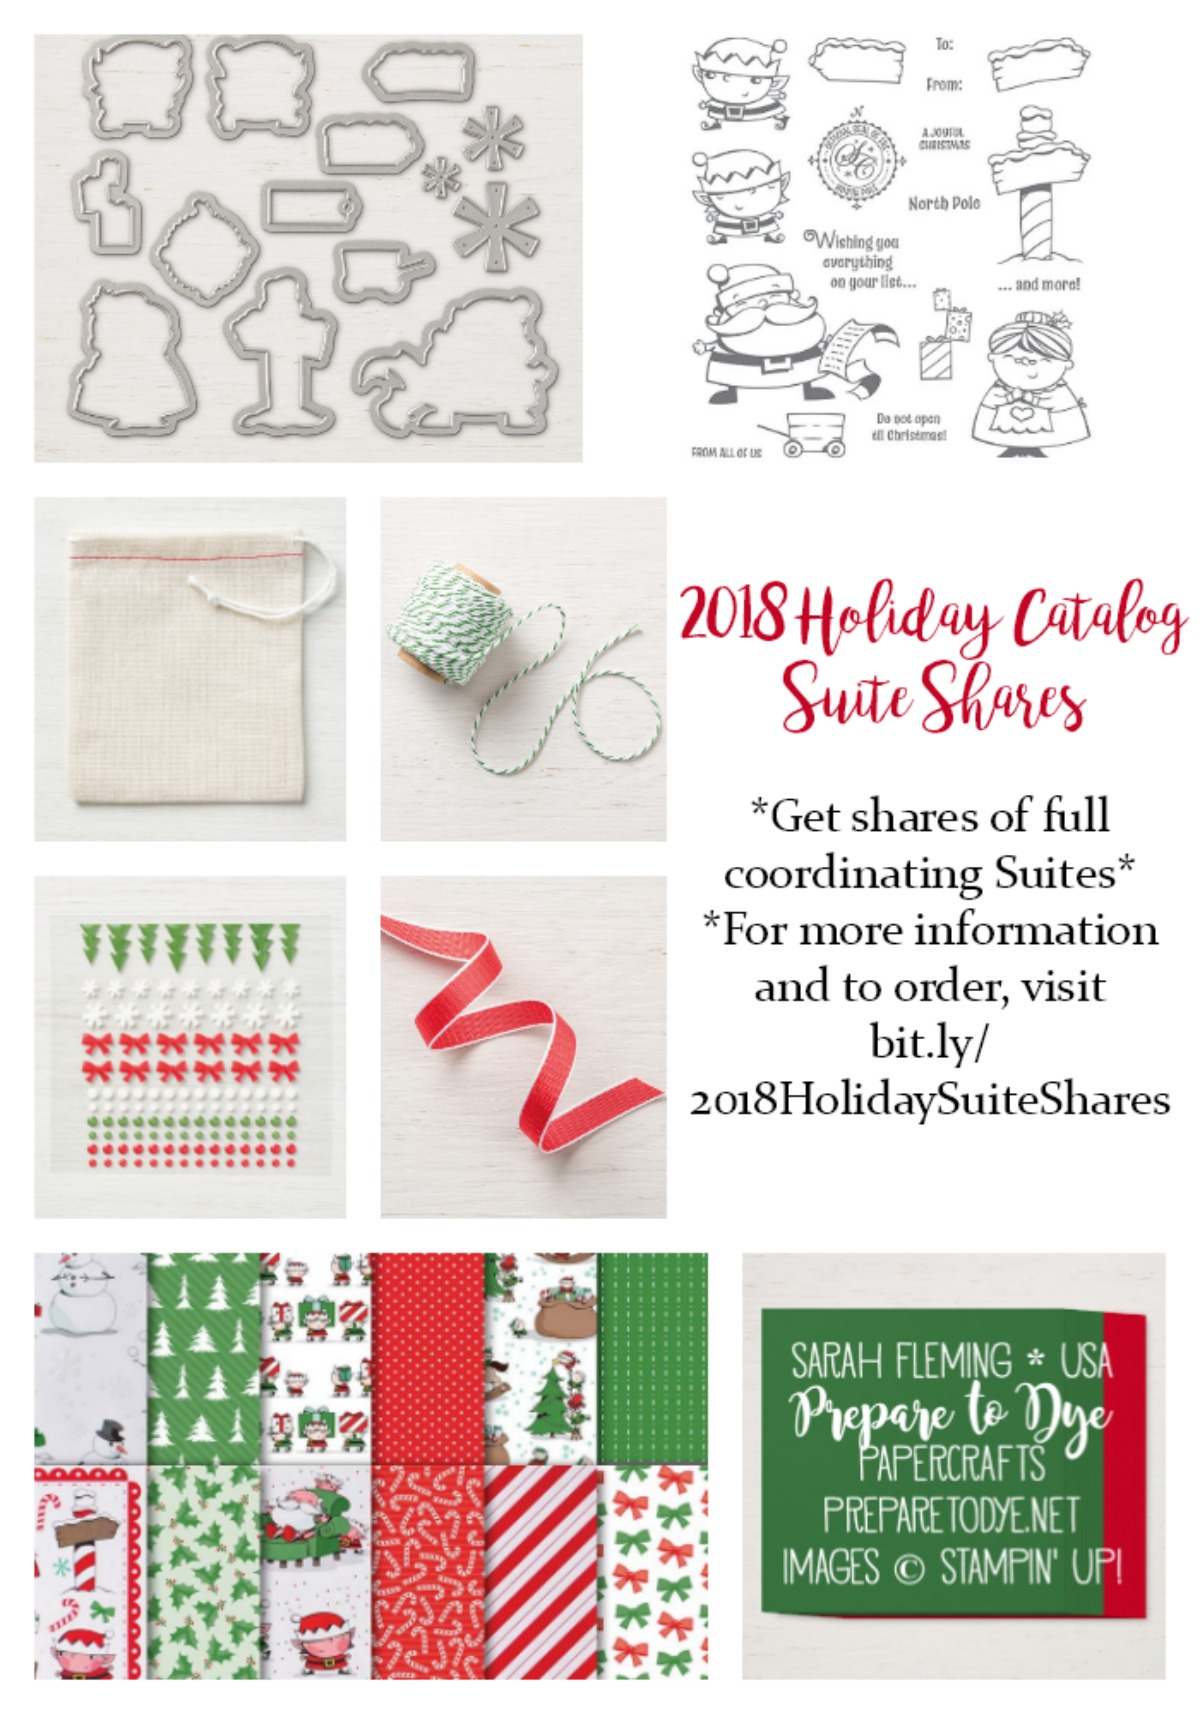 2018 Stampin' Up! Holiday Catalog Suite Shares - get shares of full suites of coordinating products - with option for consumables only or adding on full bundles - Sarah Fleming - Prepare to Dye Papercrafts